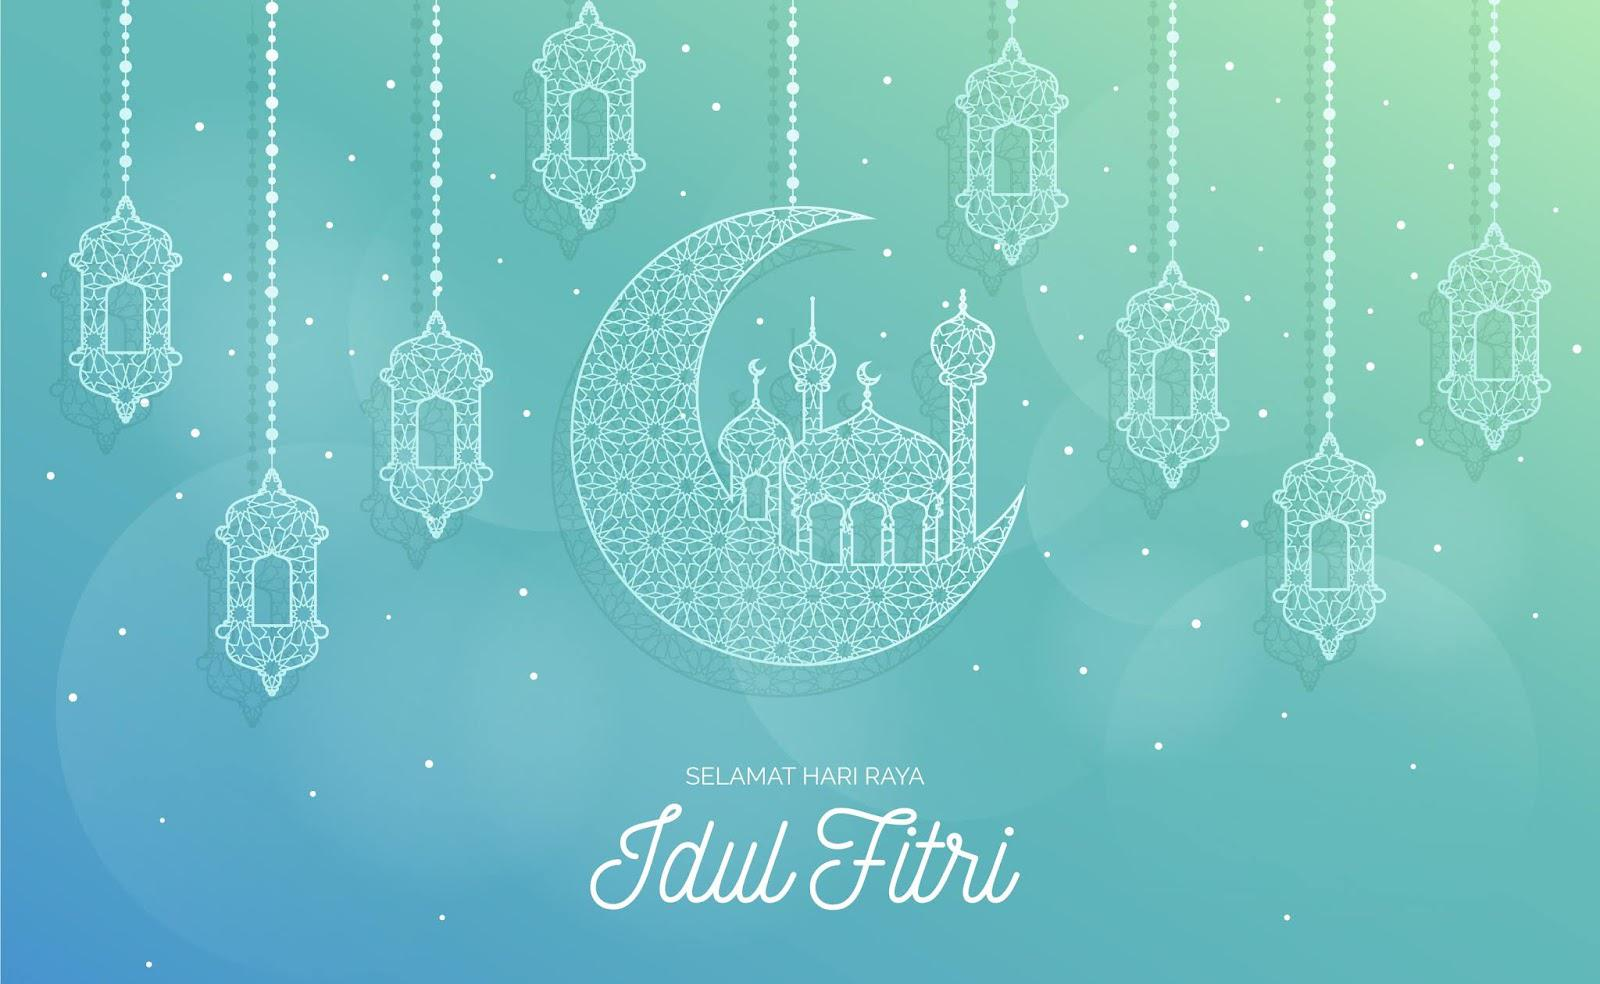 Wallpaper Idul Fitri 2019 15 Wallpapers – Adorable Wallpapers